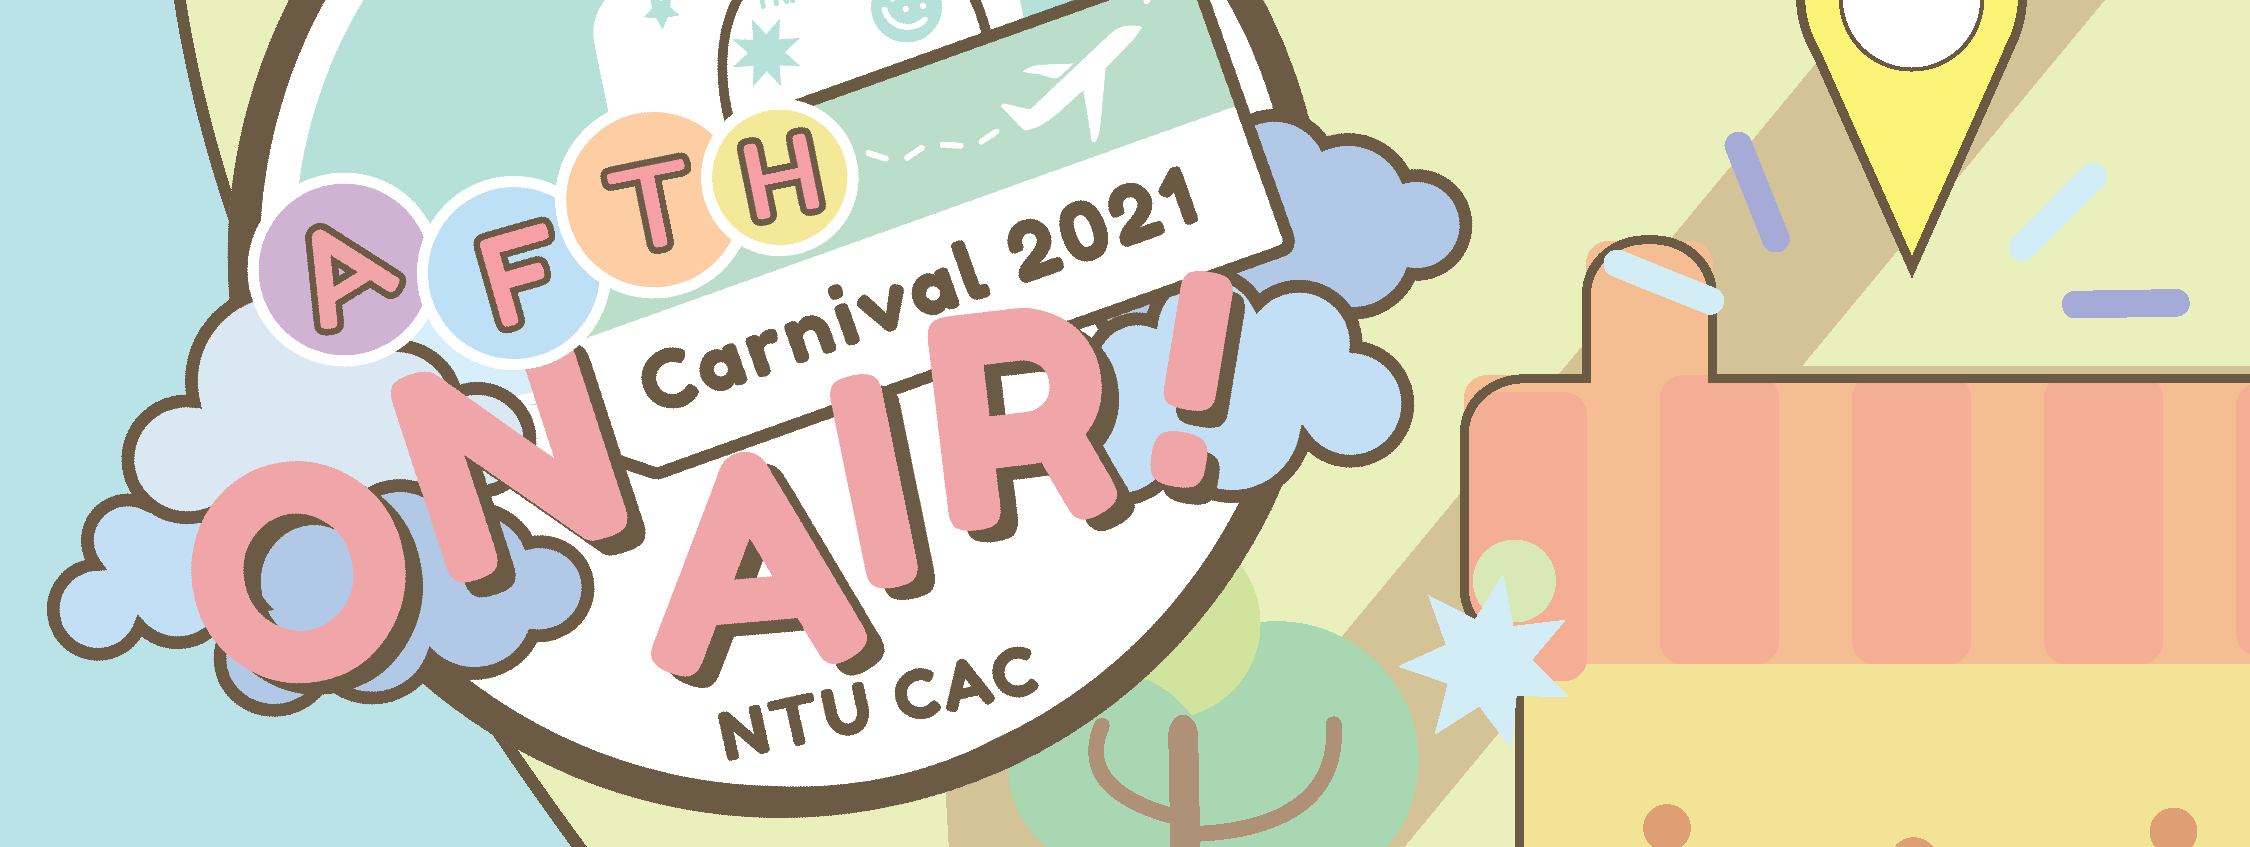 NTU CAC Arts From The Heart